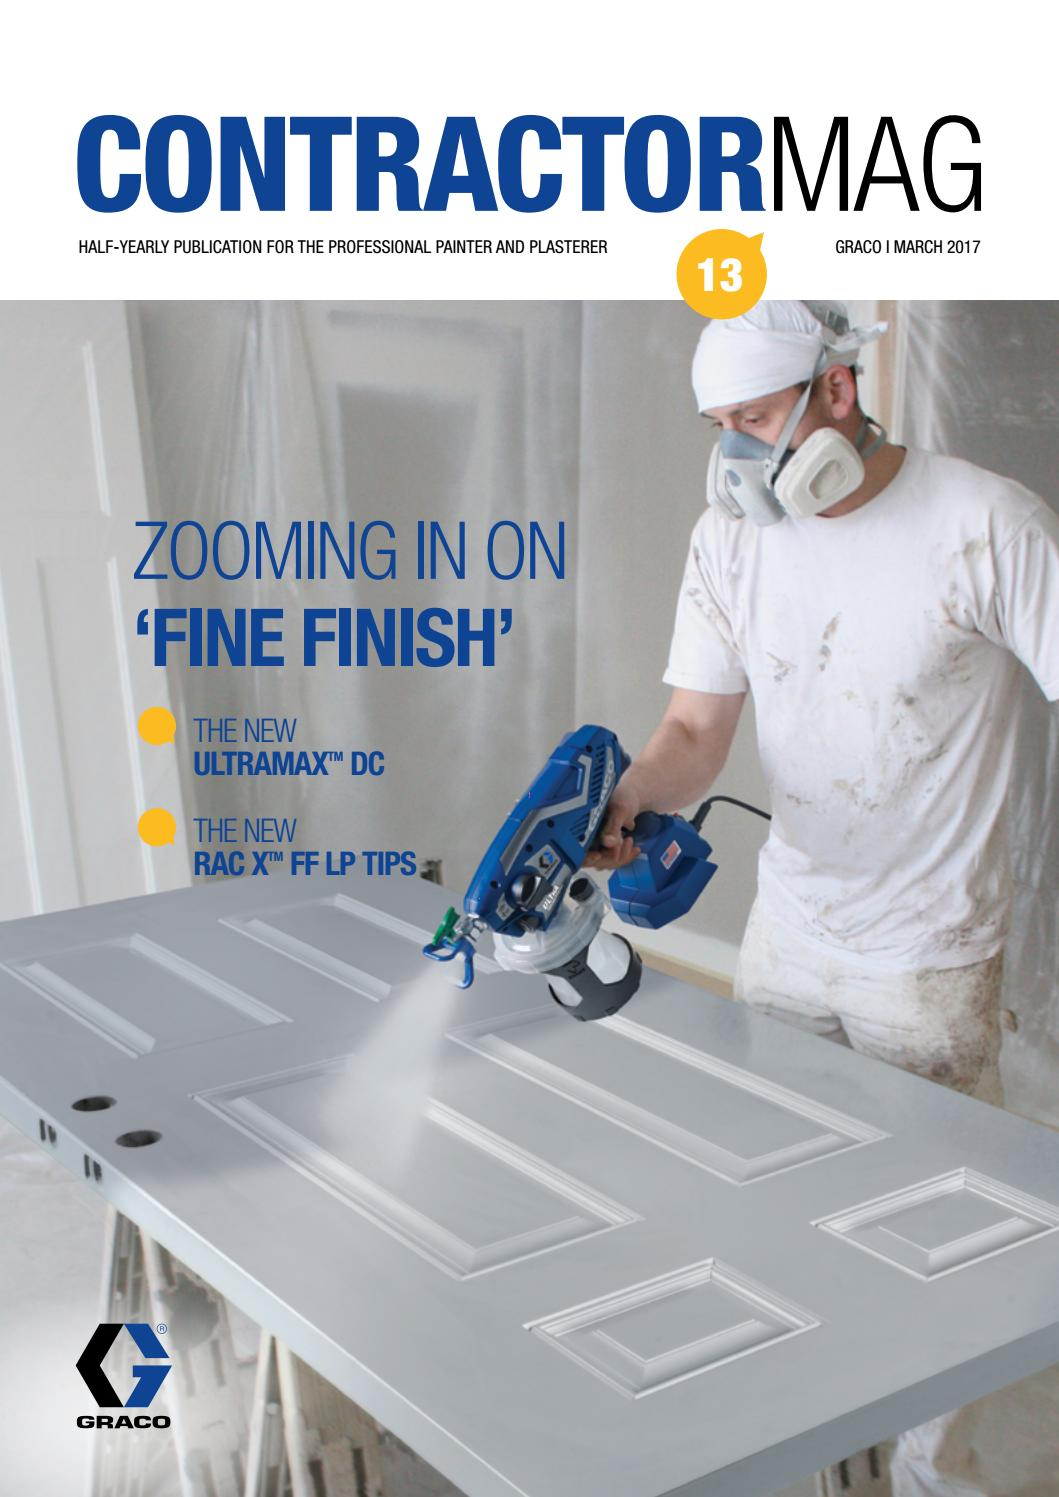 Contractor mag13 eng by Evelyne Falcomer - issuu